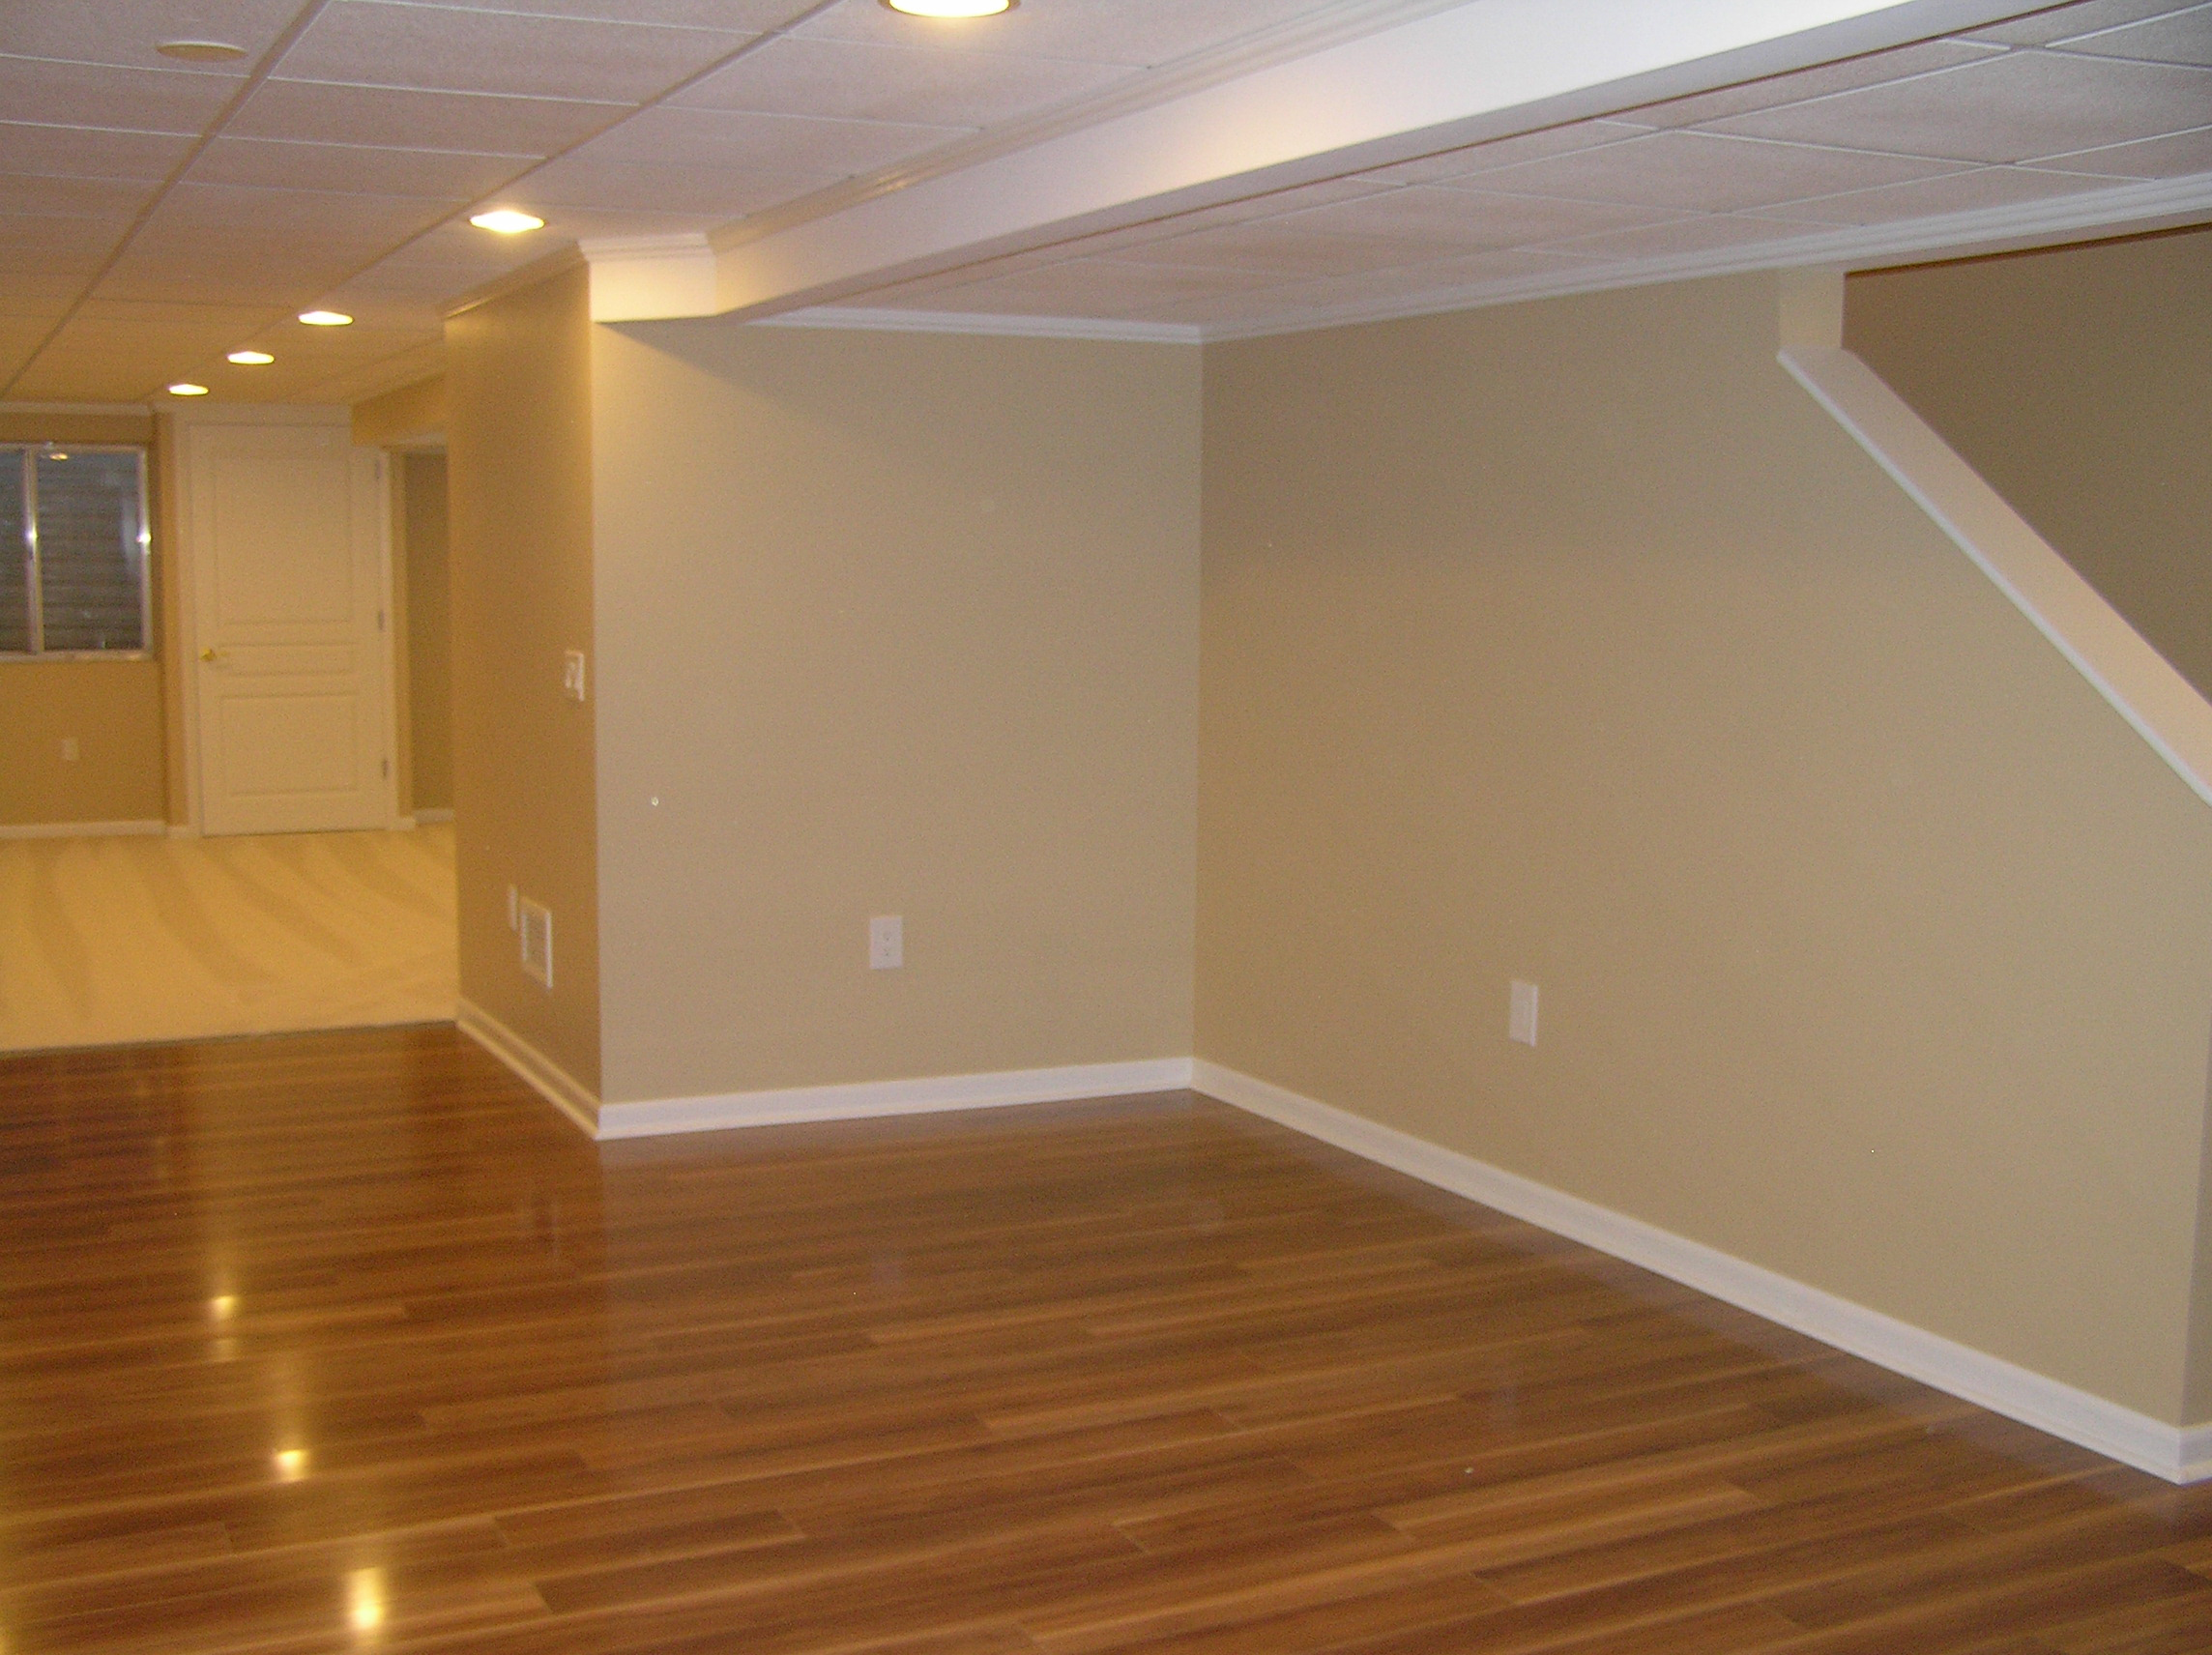 Basement Finishing In Naperville, Aurora, Joliet, Illinois